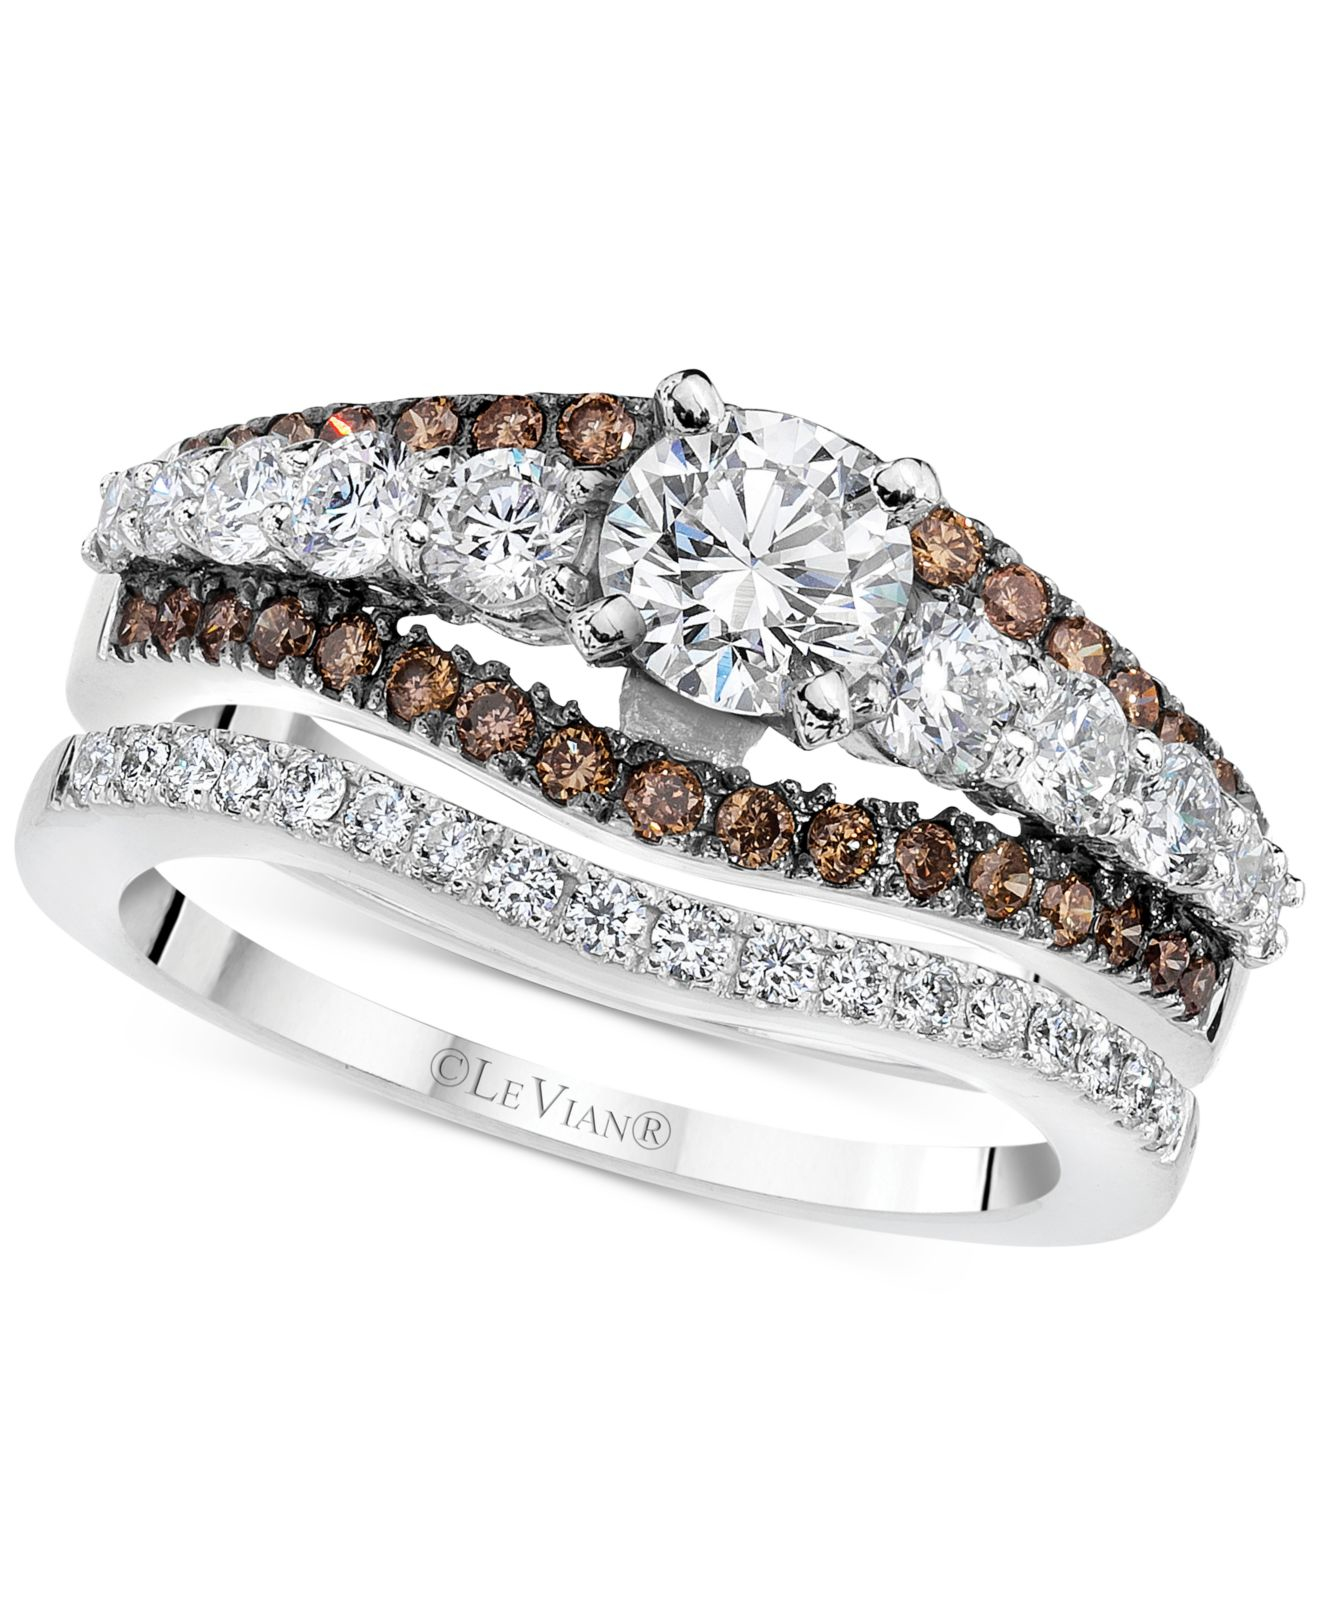 Le vian Bridal Diamond Bridal Set 1 1 2 Ct T w In 14k White Gold in Multi